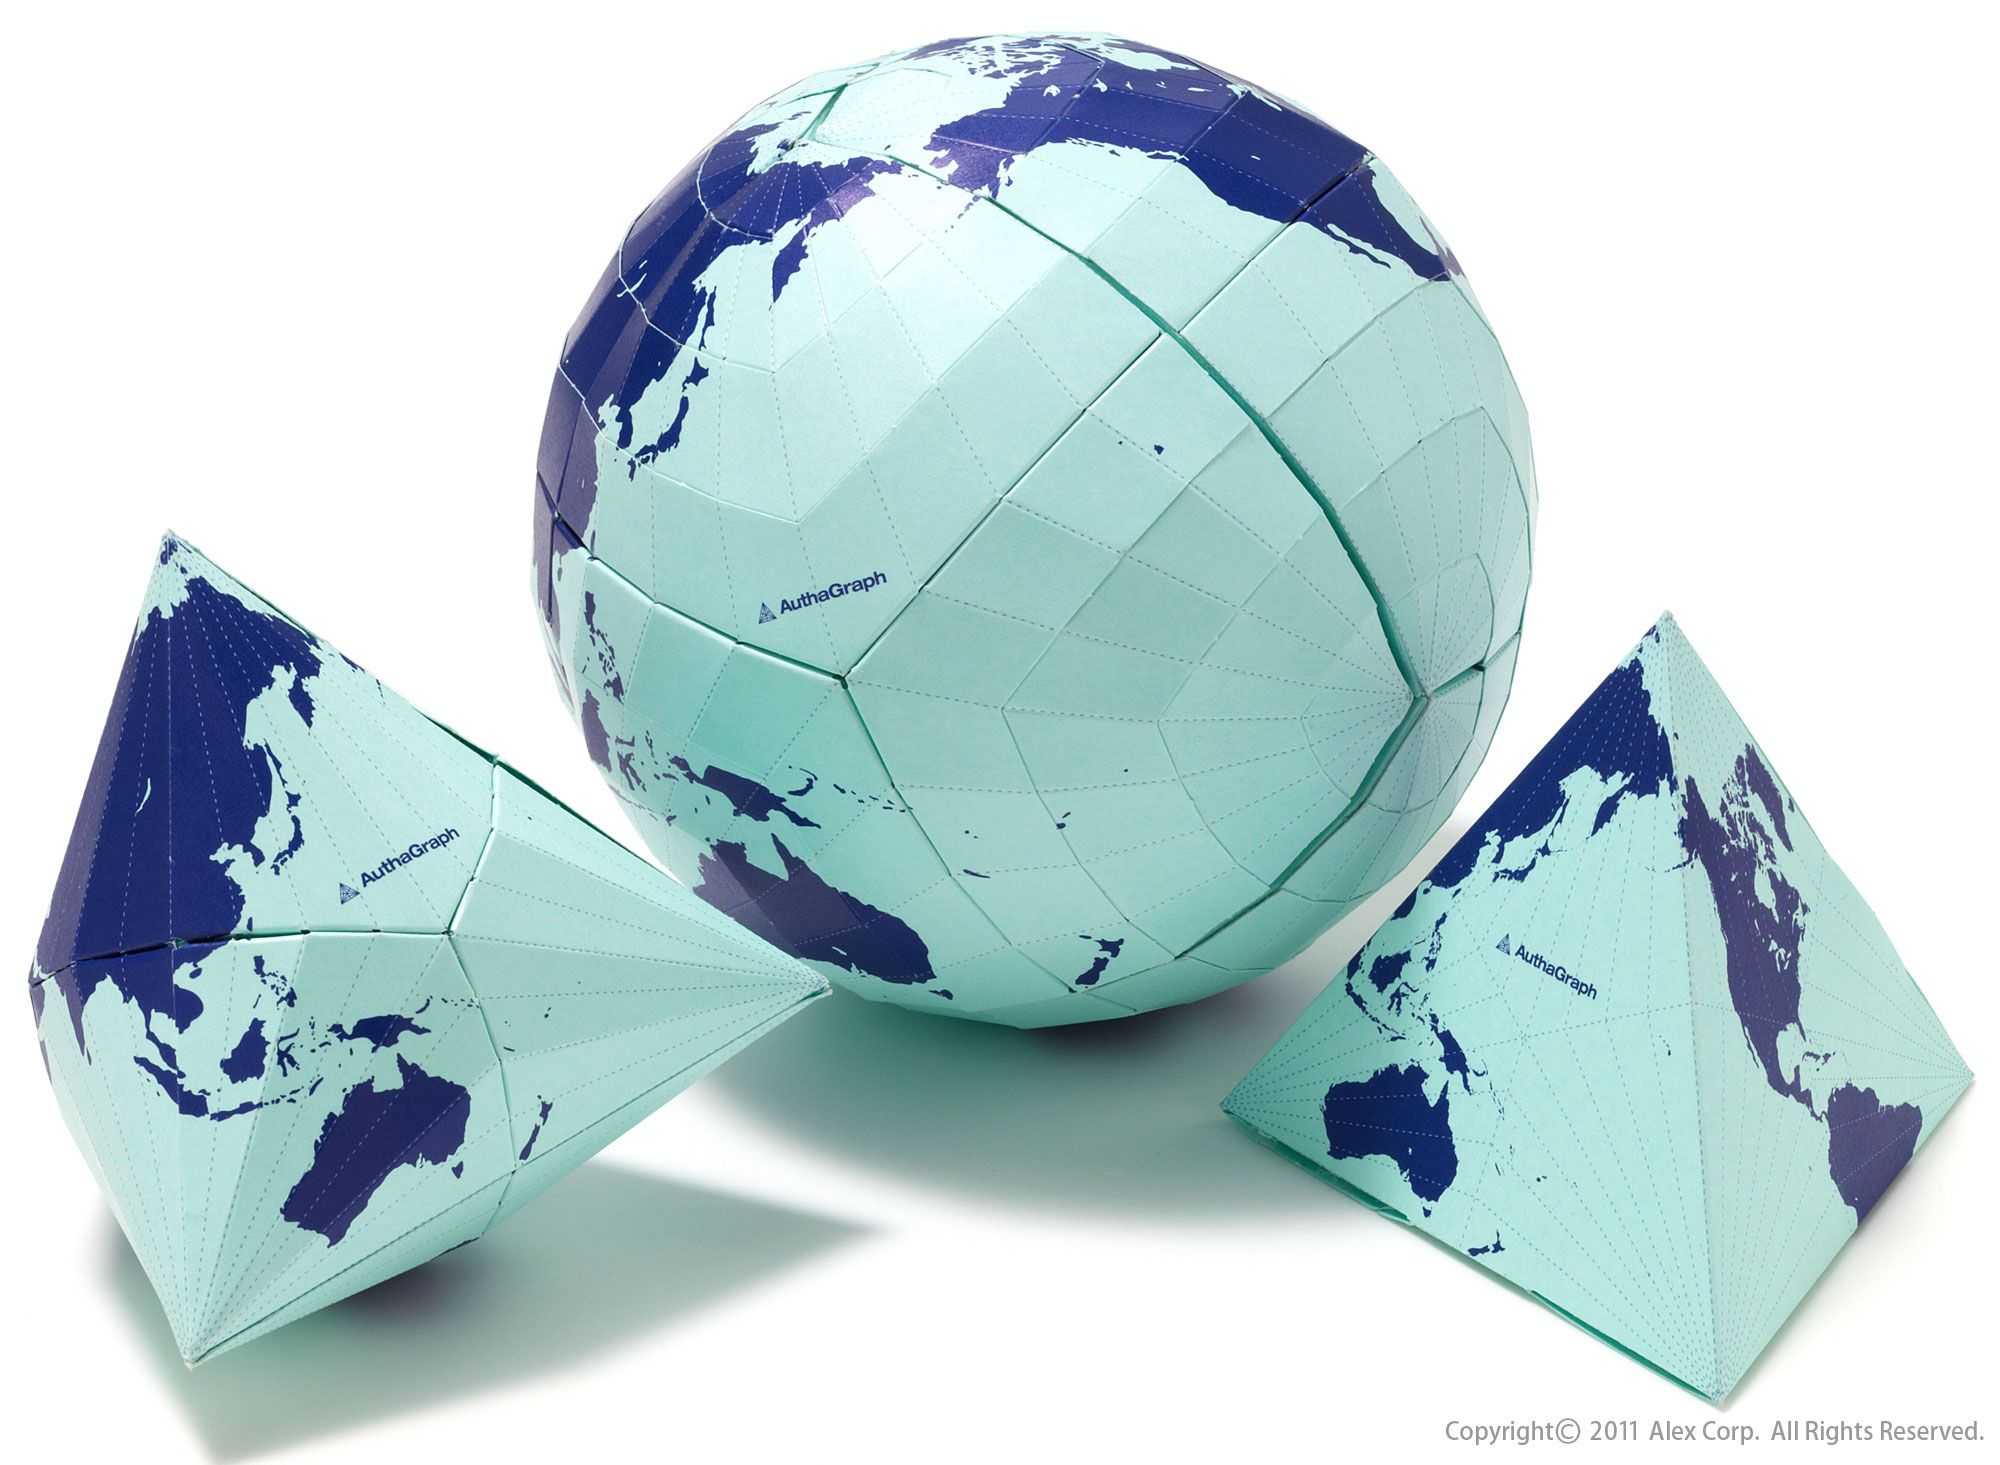 Authagraphic projection the worlds most accurate globe the the new map of the world authagraph globe world map authagraph globe is a paper craft assembly kit you can three dimensionally understand the process of sciox Choice Image